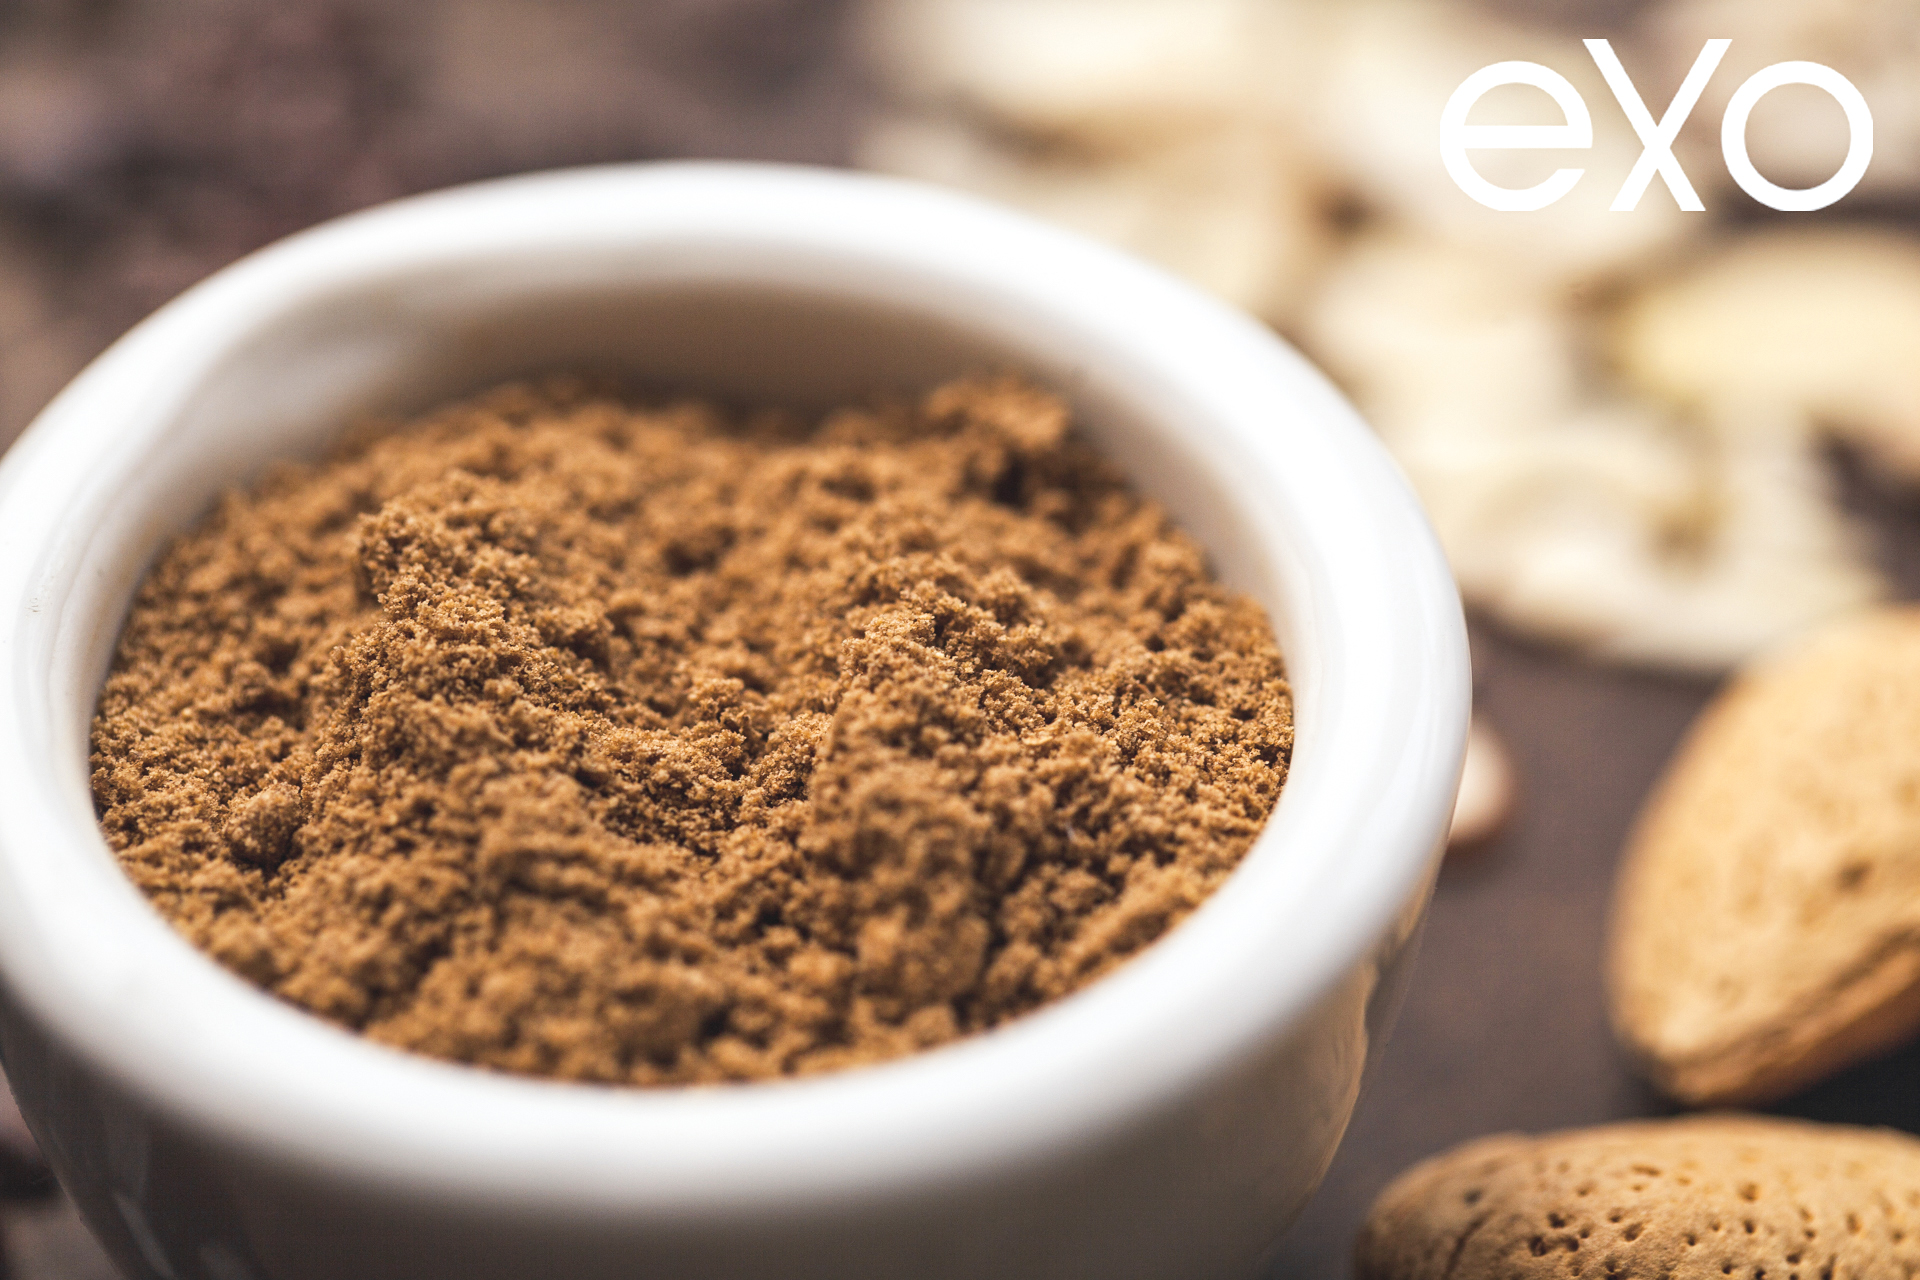 Entomo Farms, the largest cricket farm in North America, produces cricket flour, cricket powder, and insect protein. The startup Exo uses Entomo's cricket powder to produce high-protein, low-sugar energy bars, which come in five different flavors.